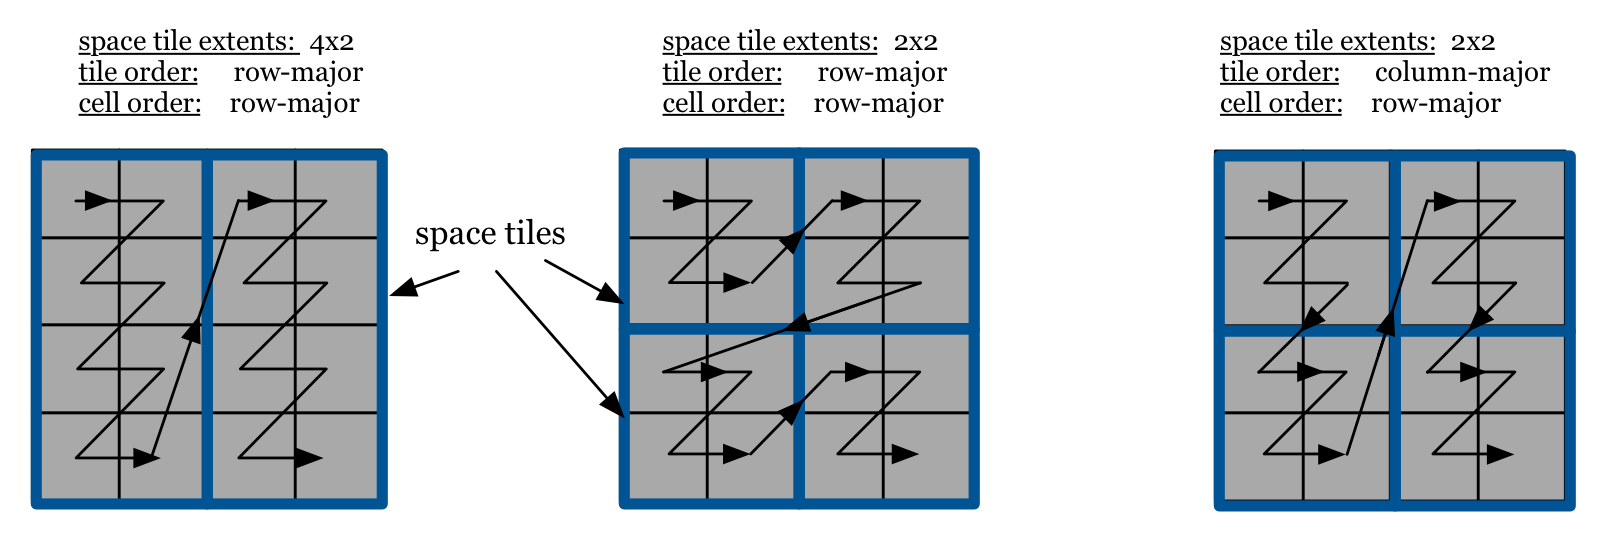 Figure 2: Global cell order in dense arrays